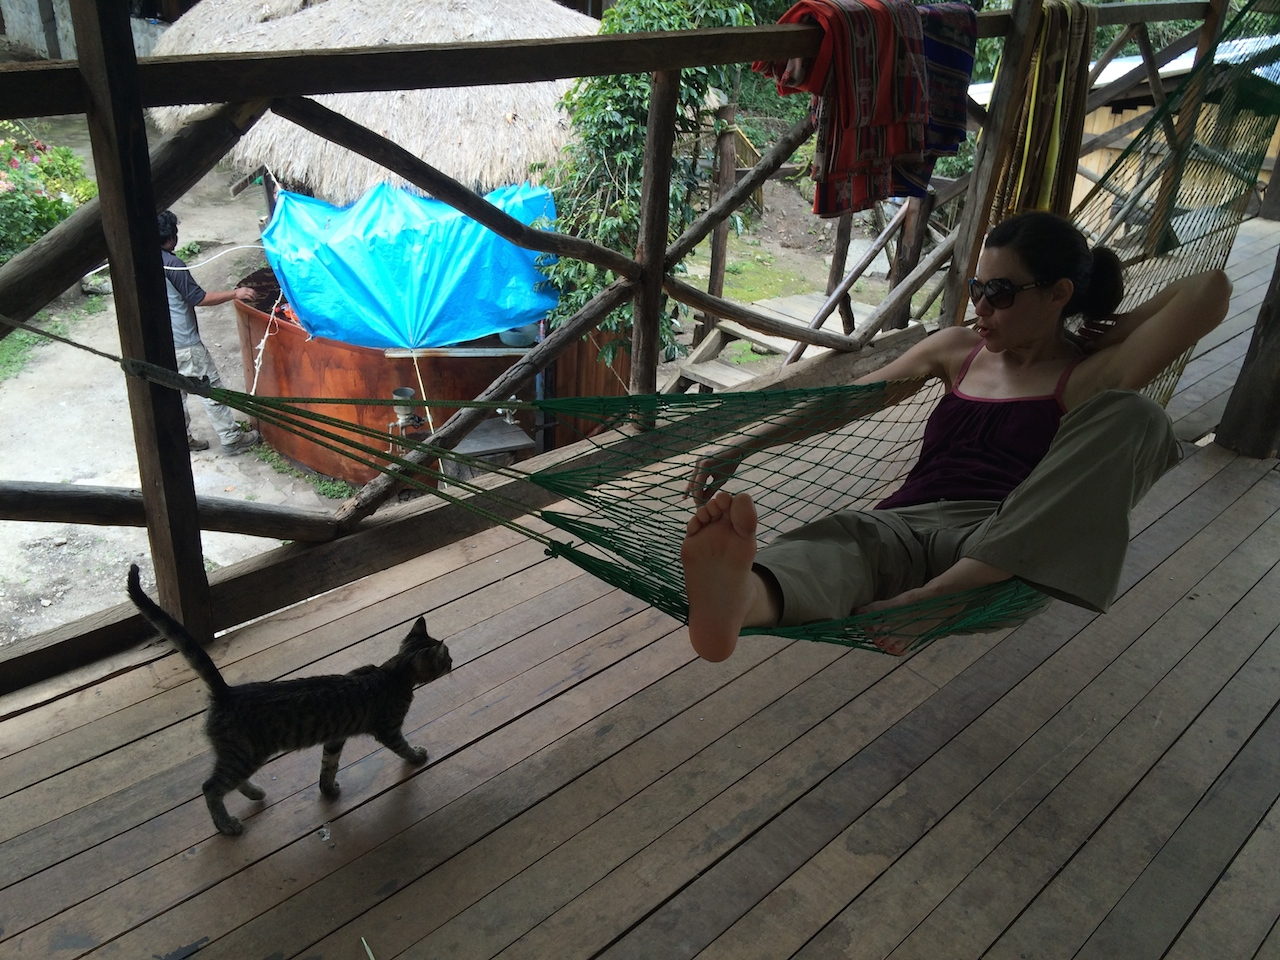 Lunch on day 4 was in a resort-like space complete with hammocks, very cute cats and excellent shade-grown coffee. We had our best cup of coffee in Peru here.